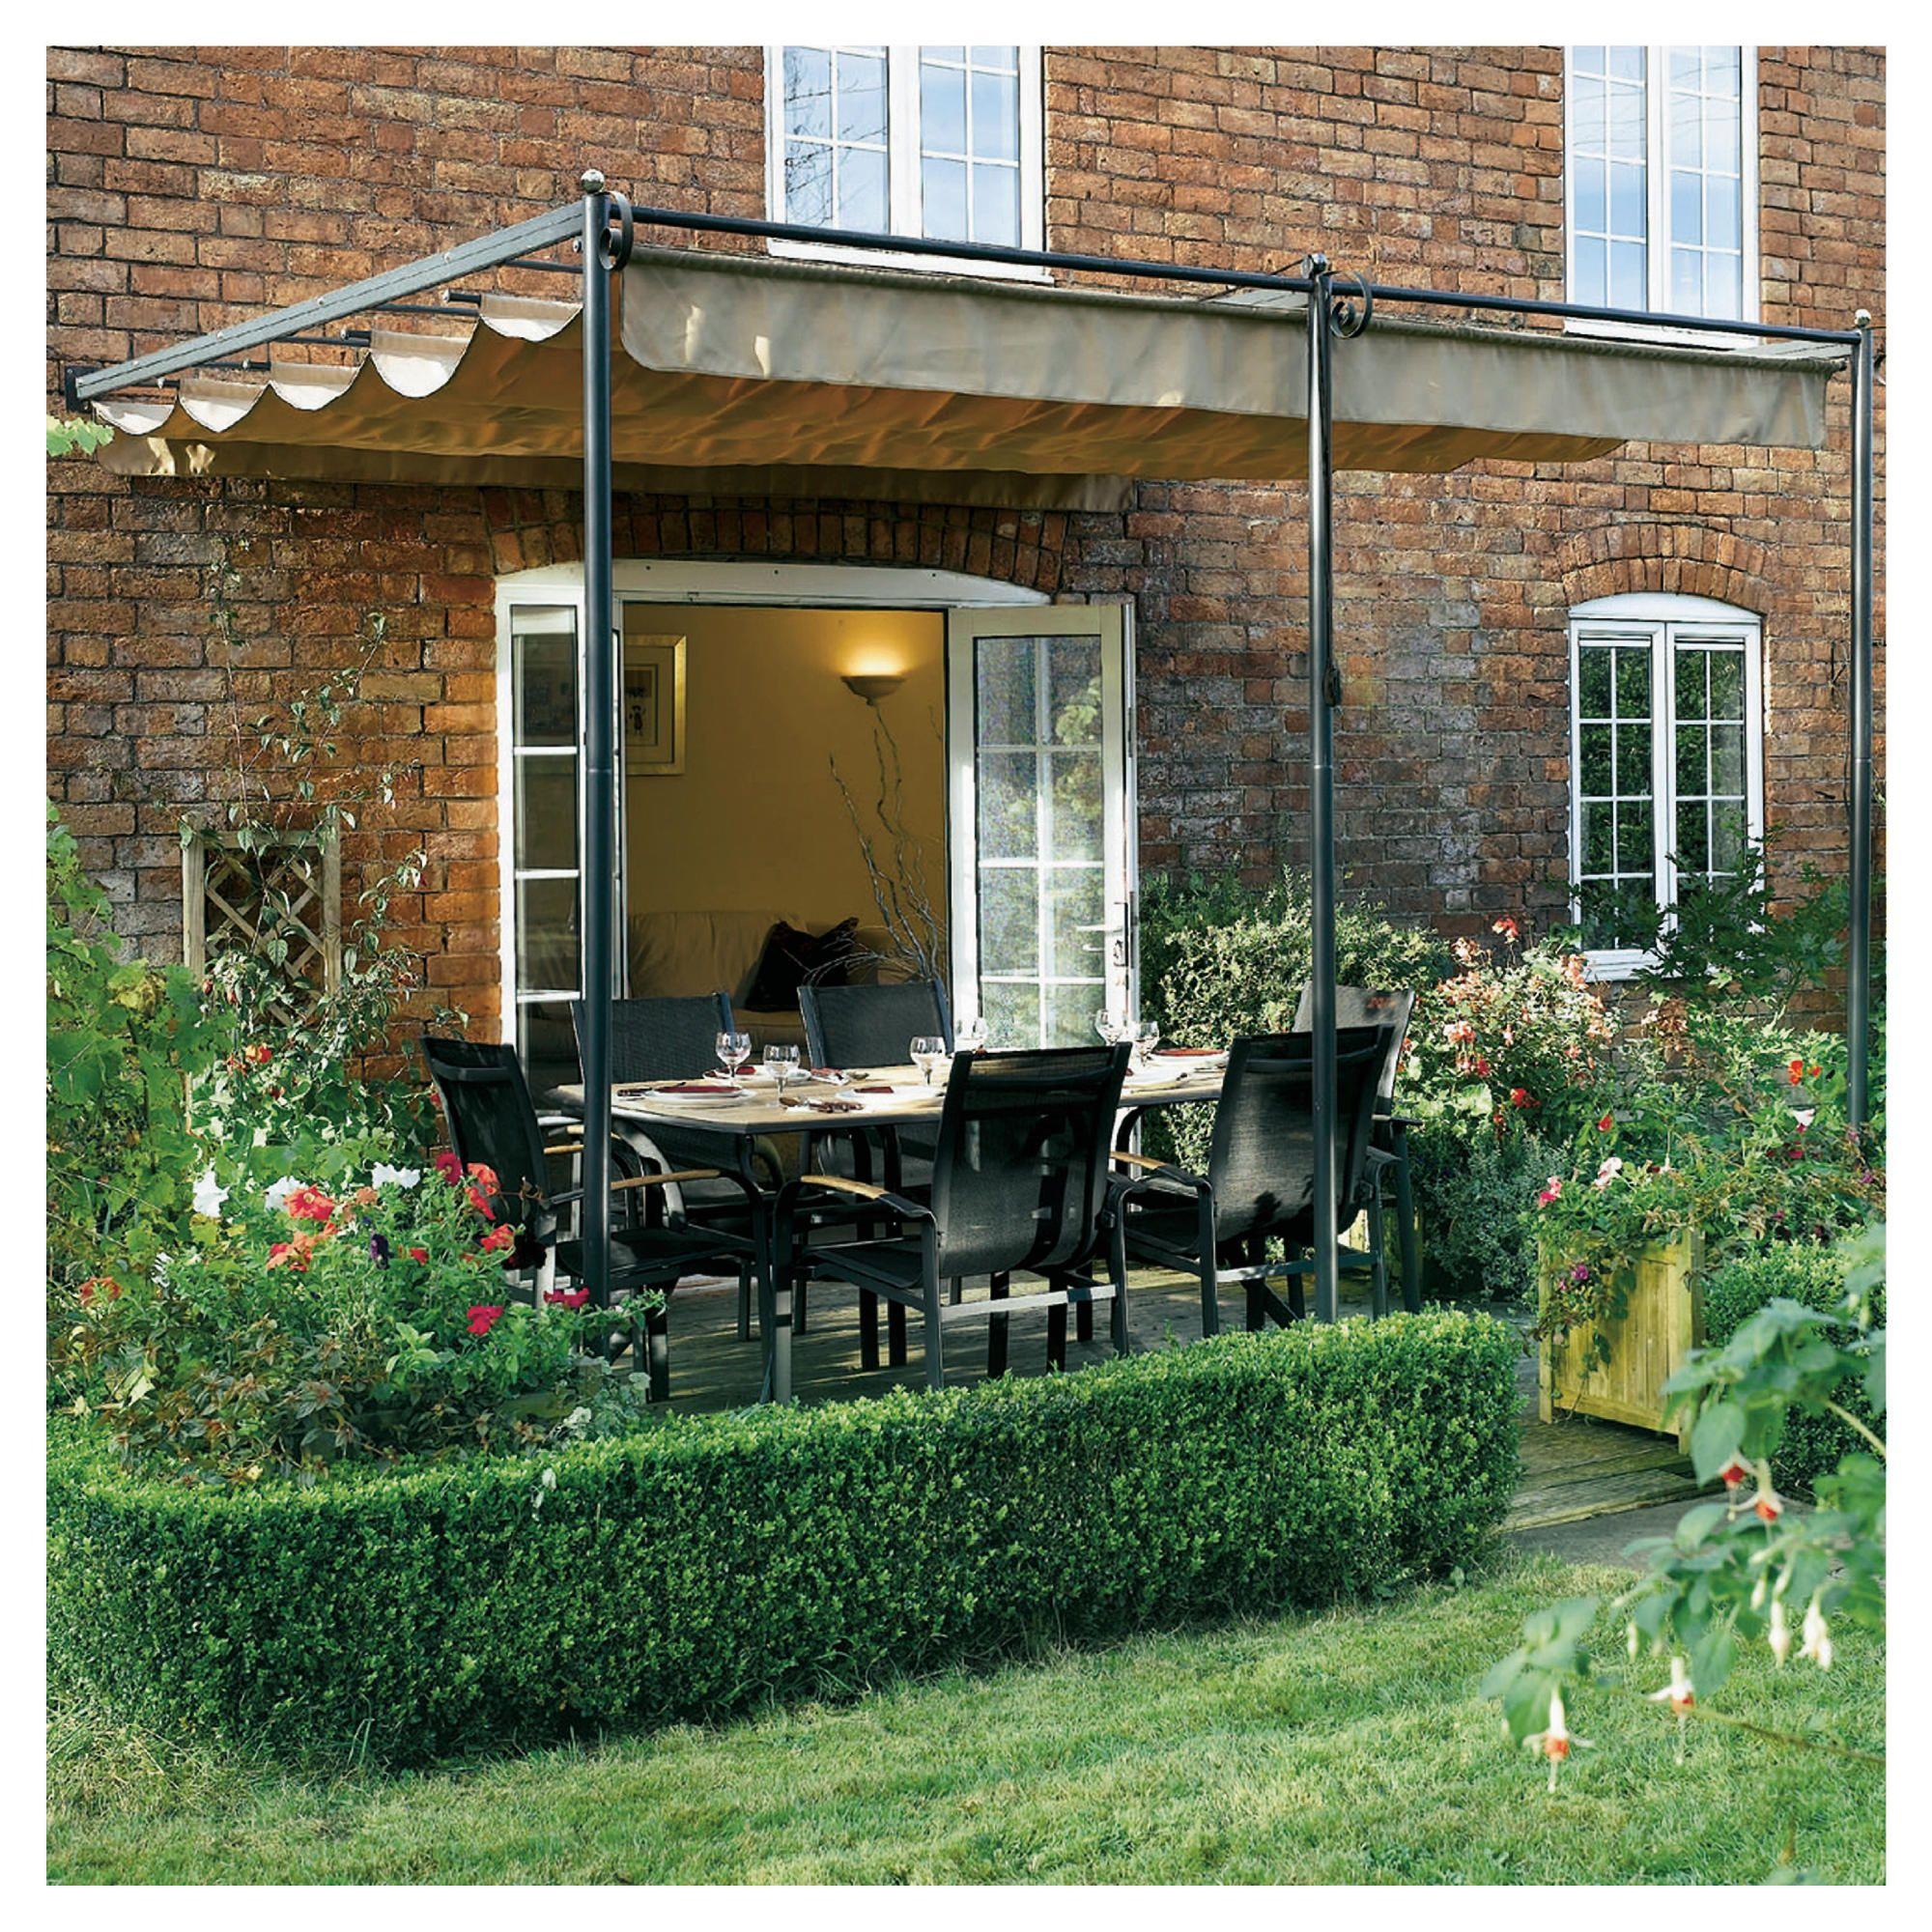 Home and garden > Garden and leisure > Garden furniture